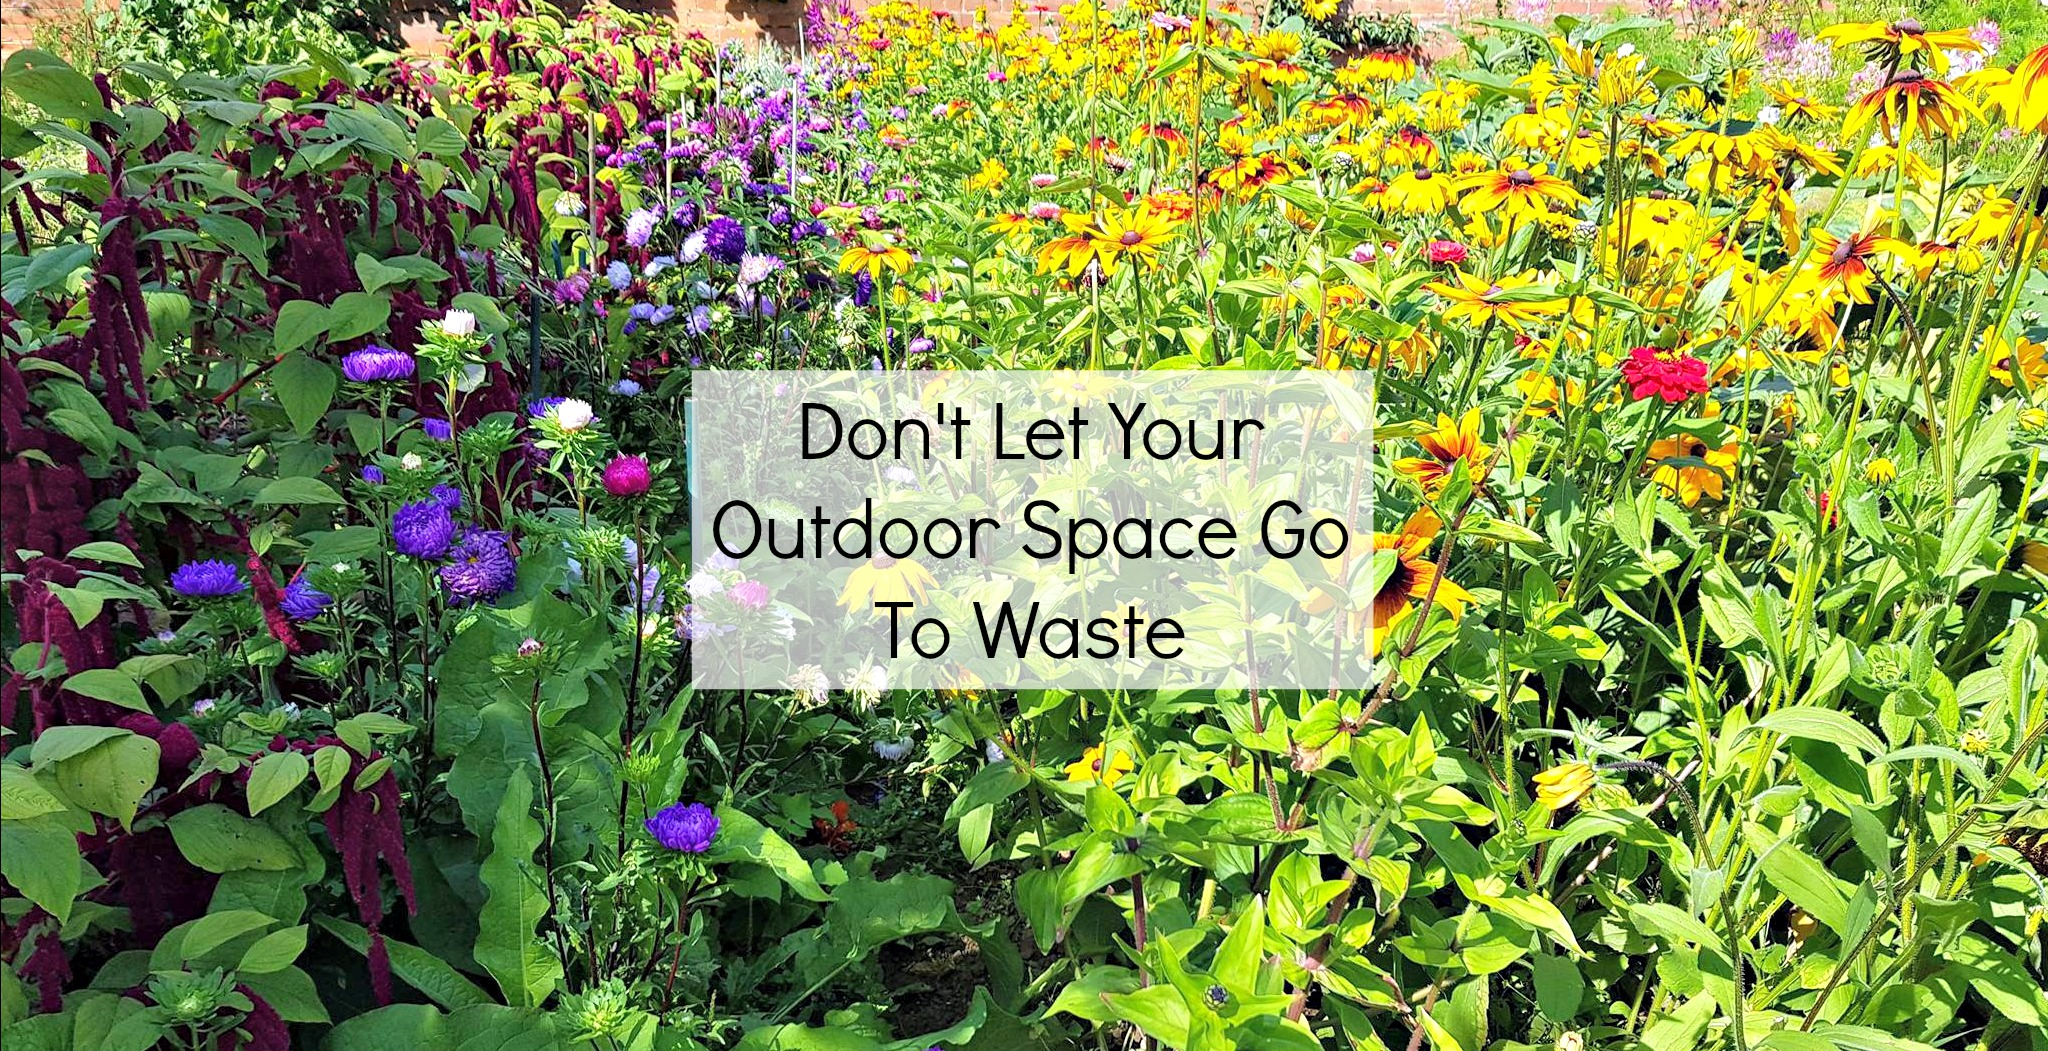 Don't Let Your Outdoor Space Go To Waste